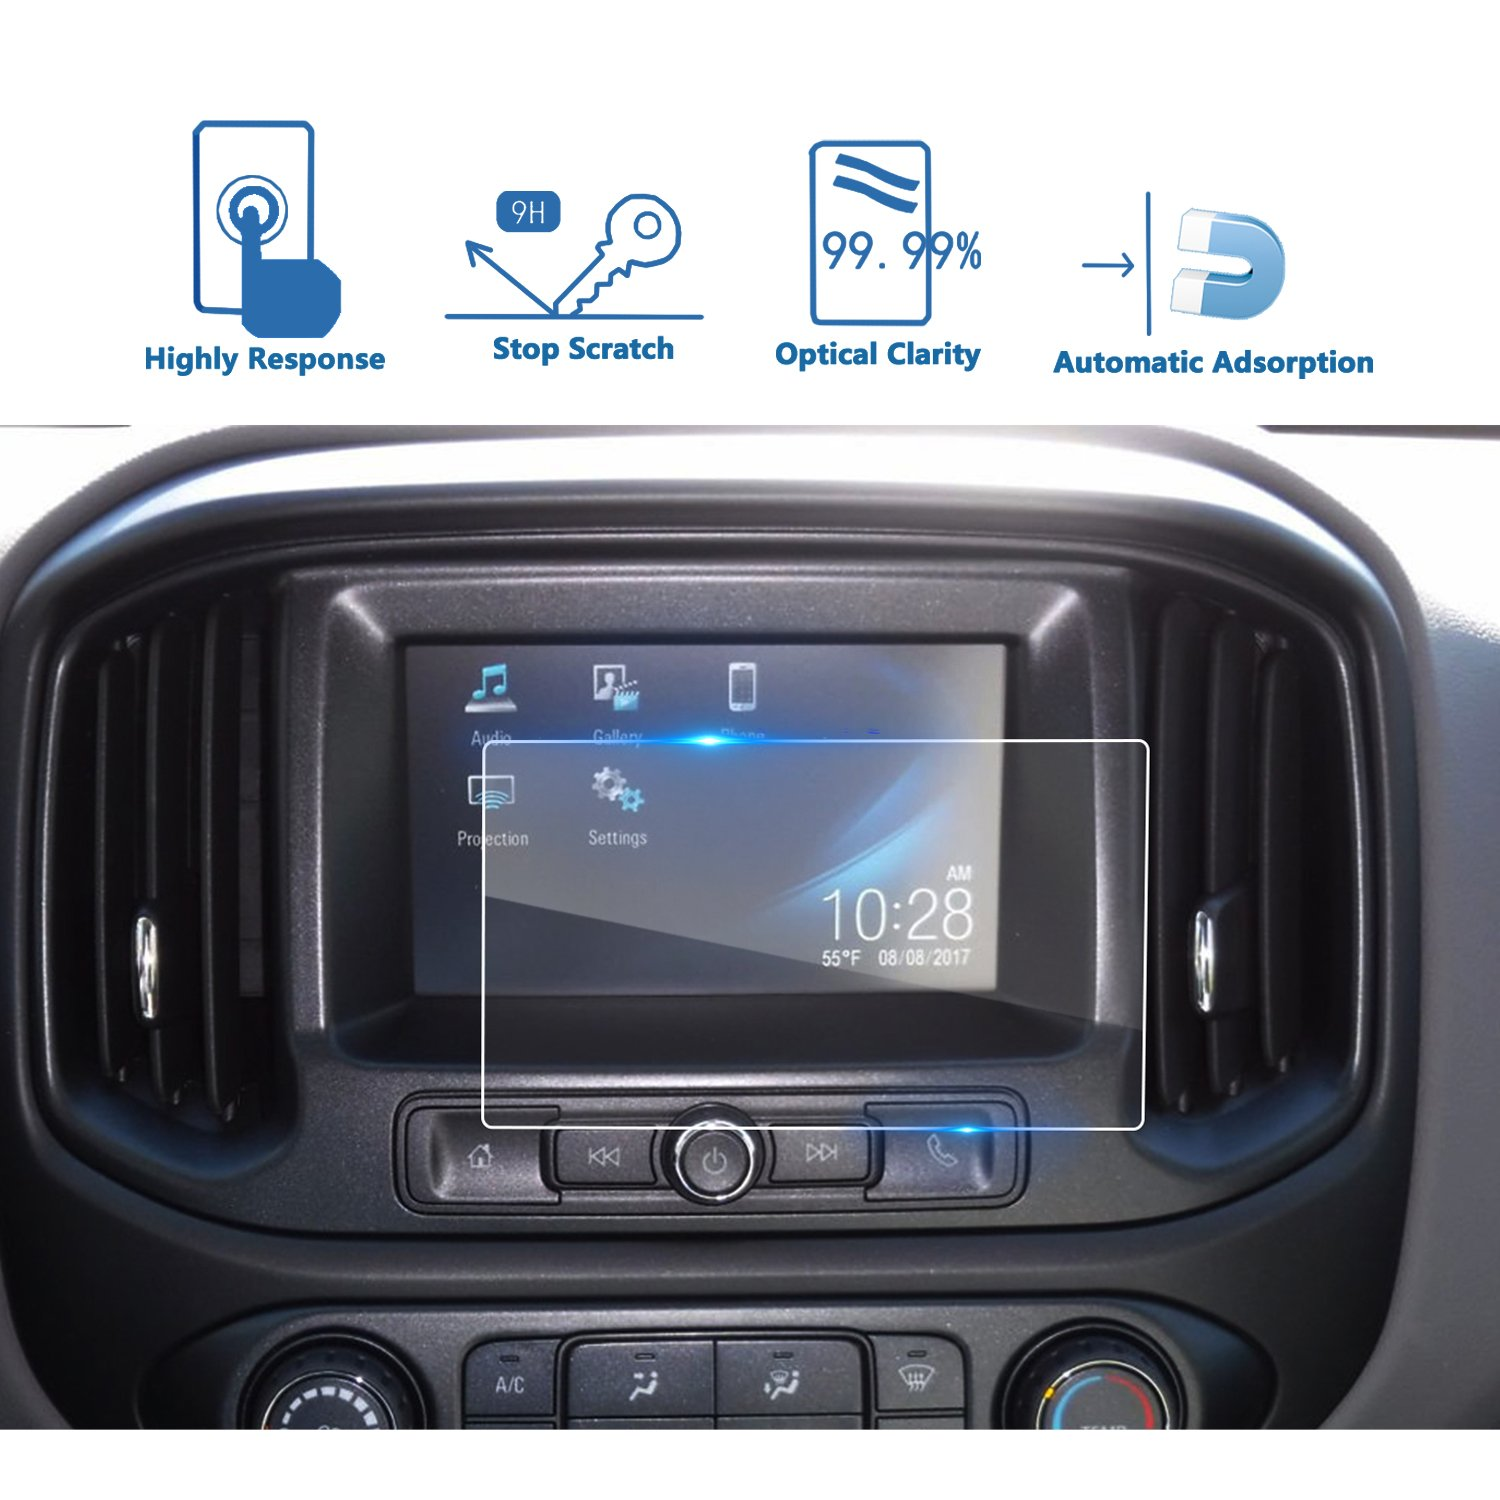 LFOTPP 2015-2018 Chevrolet Colorado 7 Inch Car Navigation Screen Protector, [9H] Tempered Infotainment Glass Center Touch Screen Protector Anti Scratch High Clarity